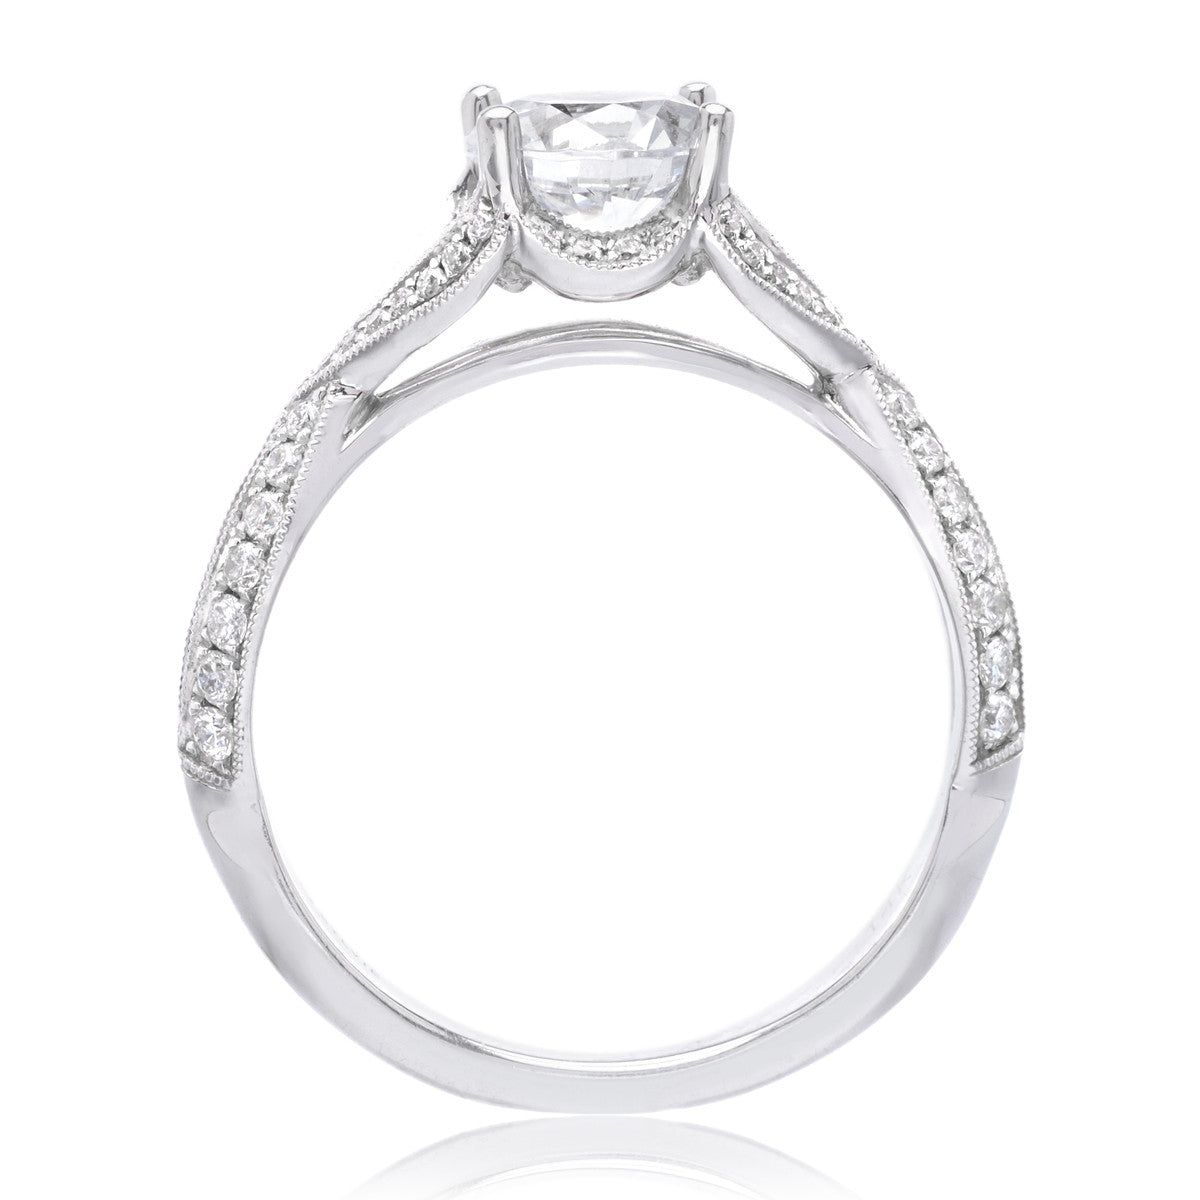 14K White Gold Vintage Criss-Cross Solitaire Engagement Ring Setting